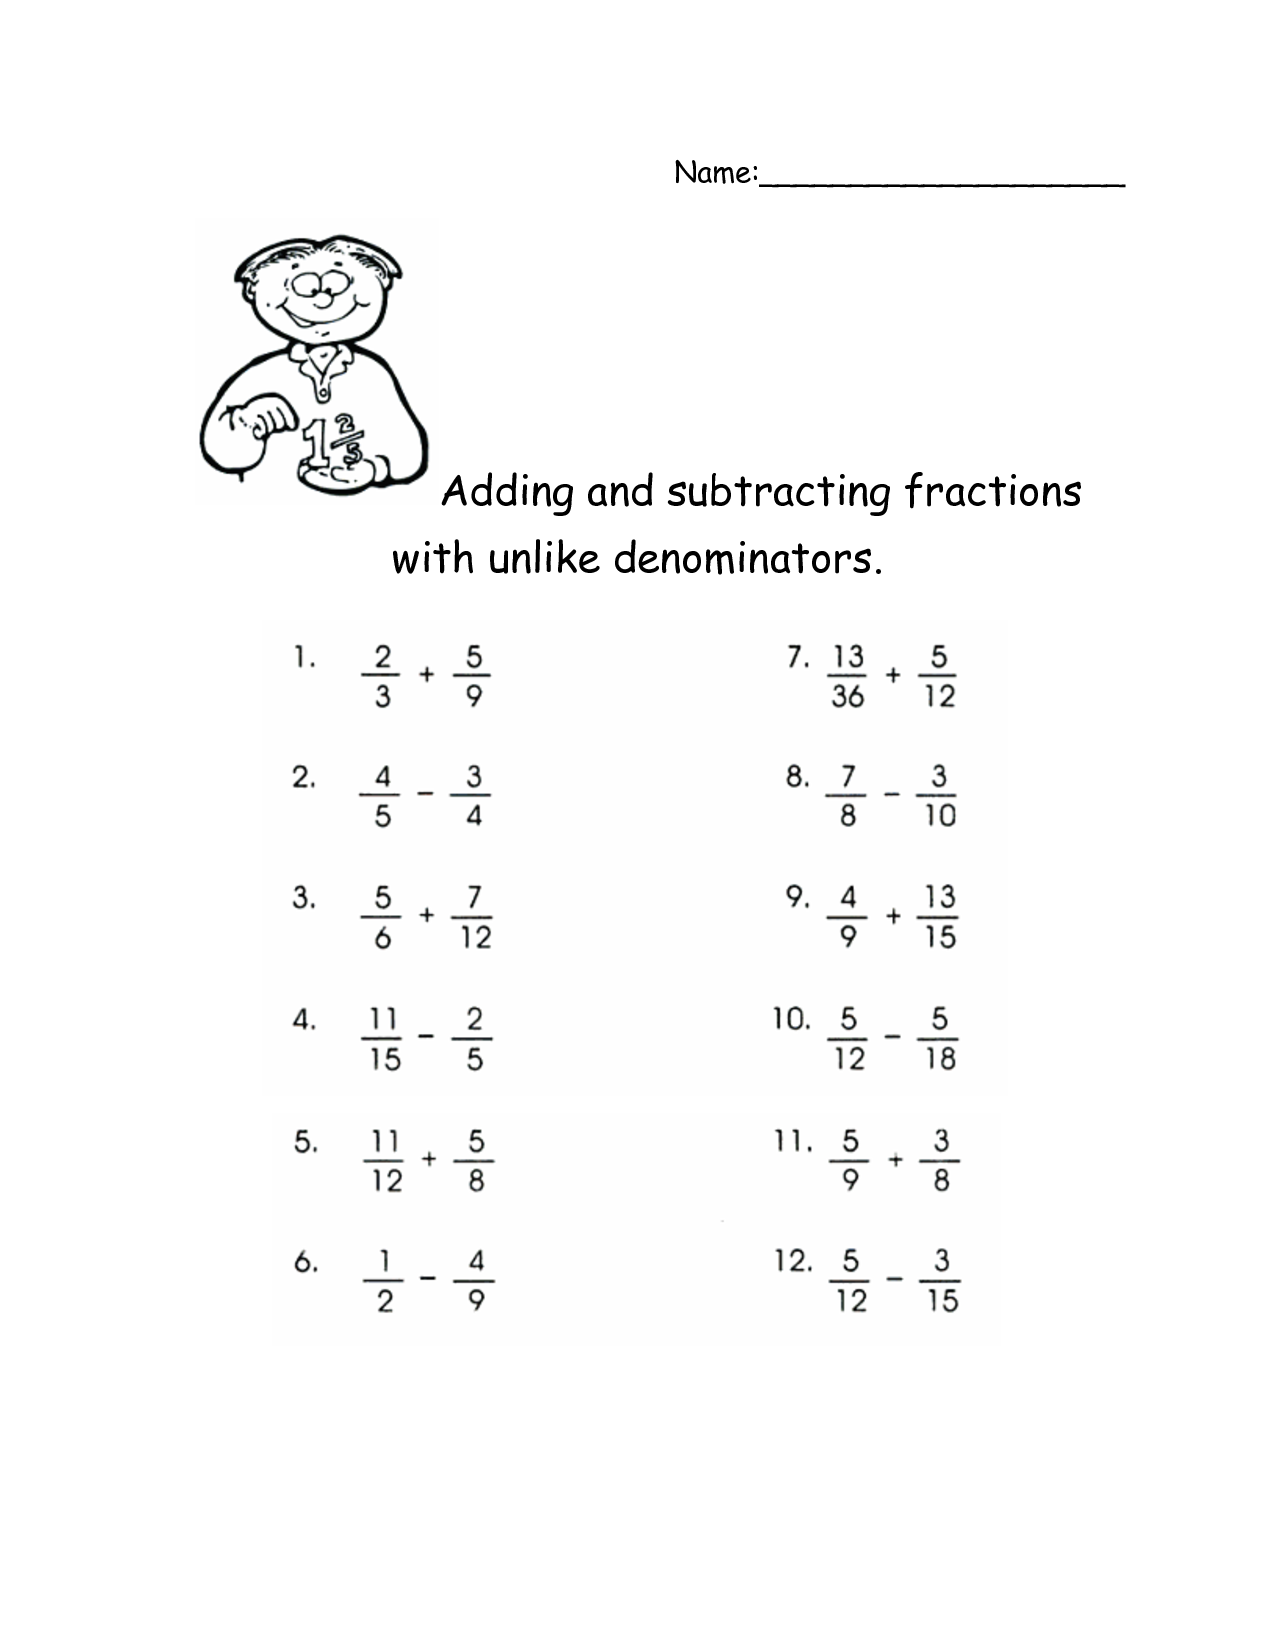 Subtract fractions homework help – Adding Fractions with Unlike Denominators Worksheet